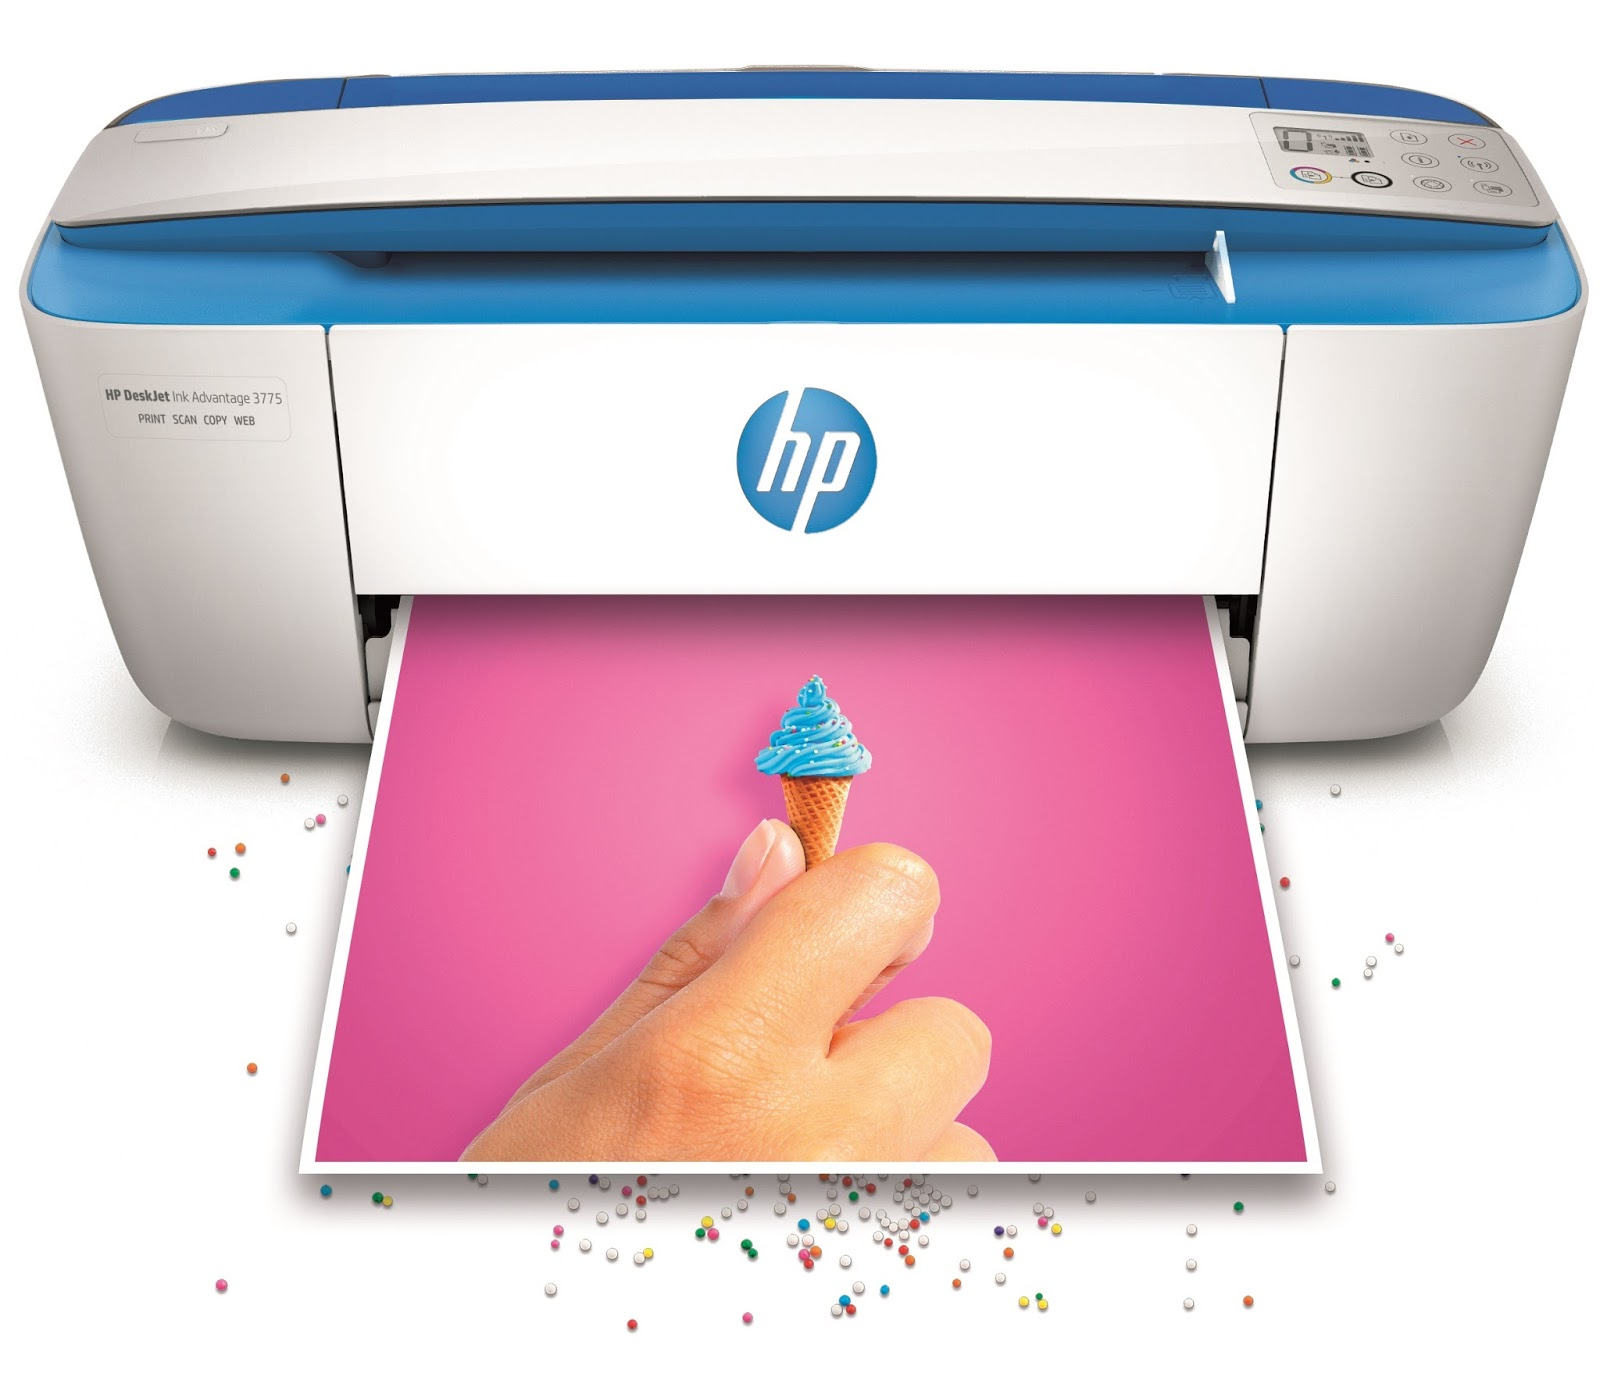 Oc Craft Make Your Childs Creativity Shine Get Free Ink With Hp Printer Deskjet Advantage 4675 All In One The Is Worlds Most Compact And Lightweight That Can Easily Fit Any Space House